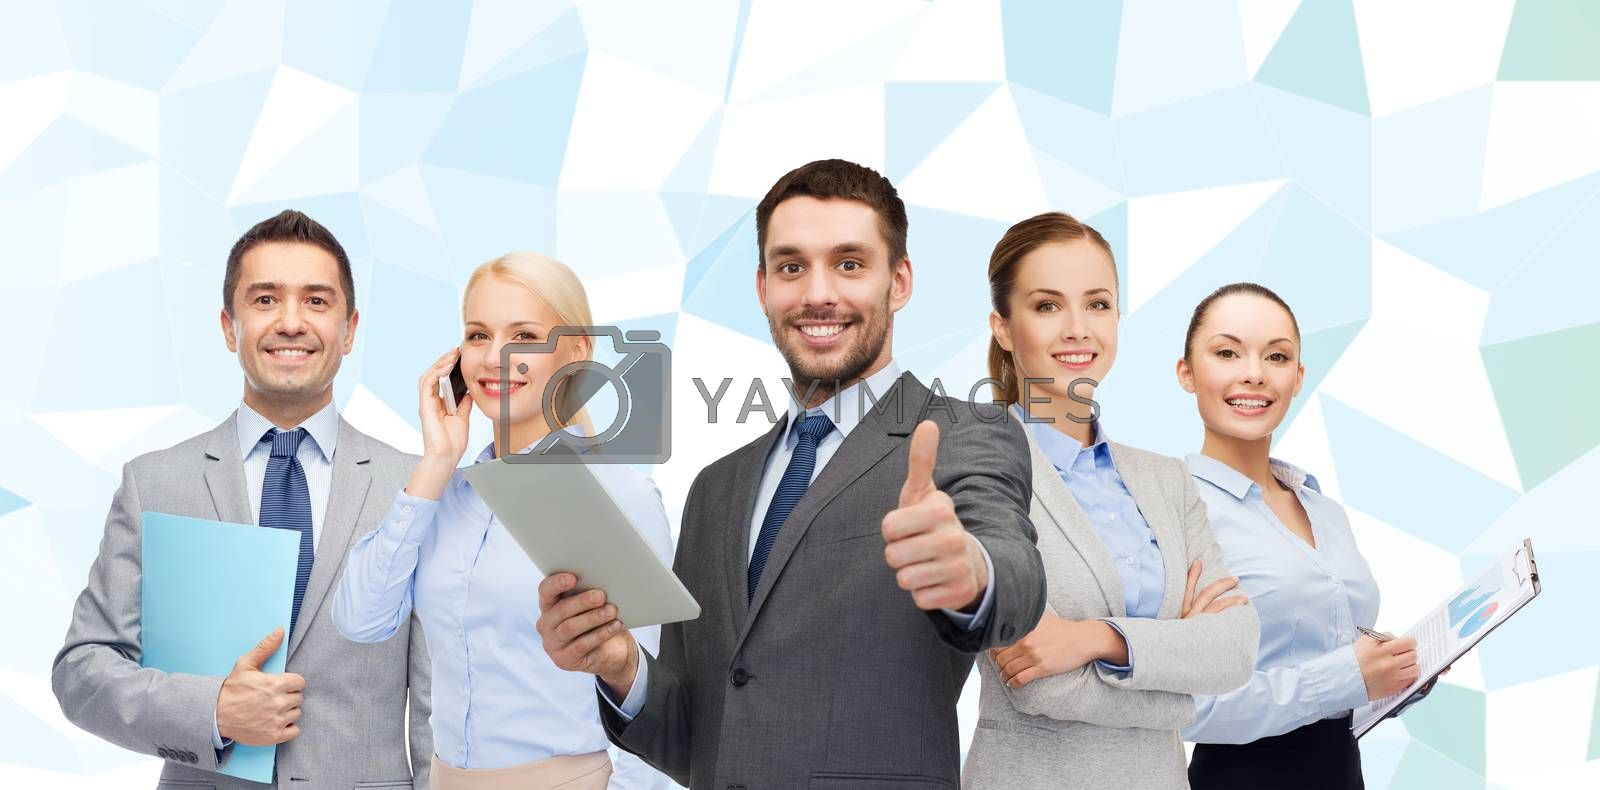 business, people, gesture and office concept - group of smiling businessmen showing thumbs up over blue low poly background